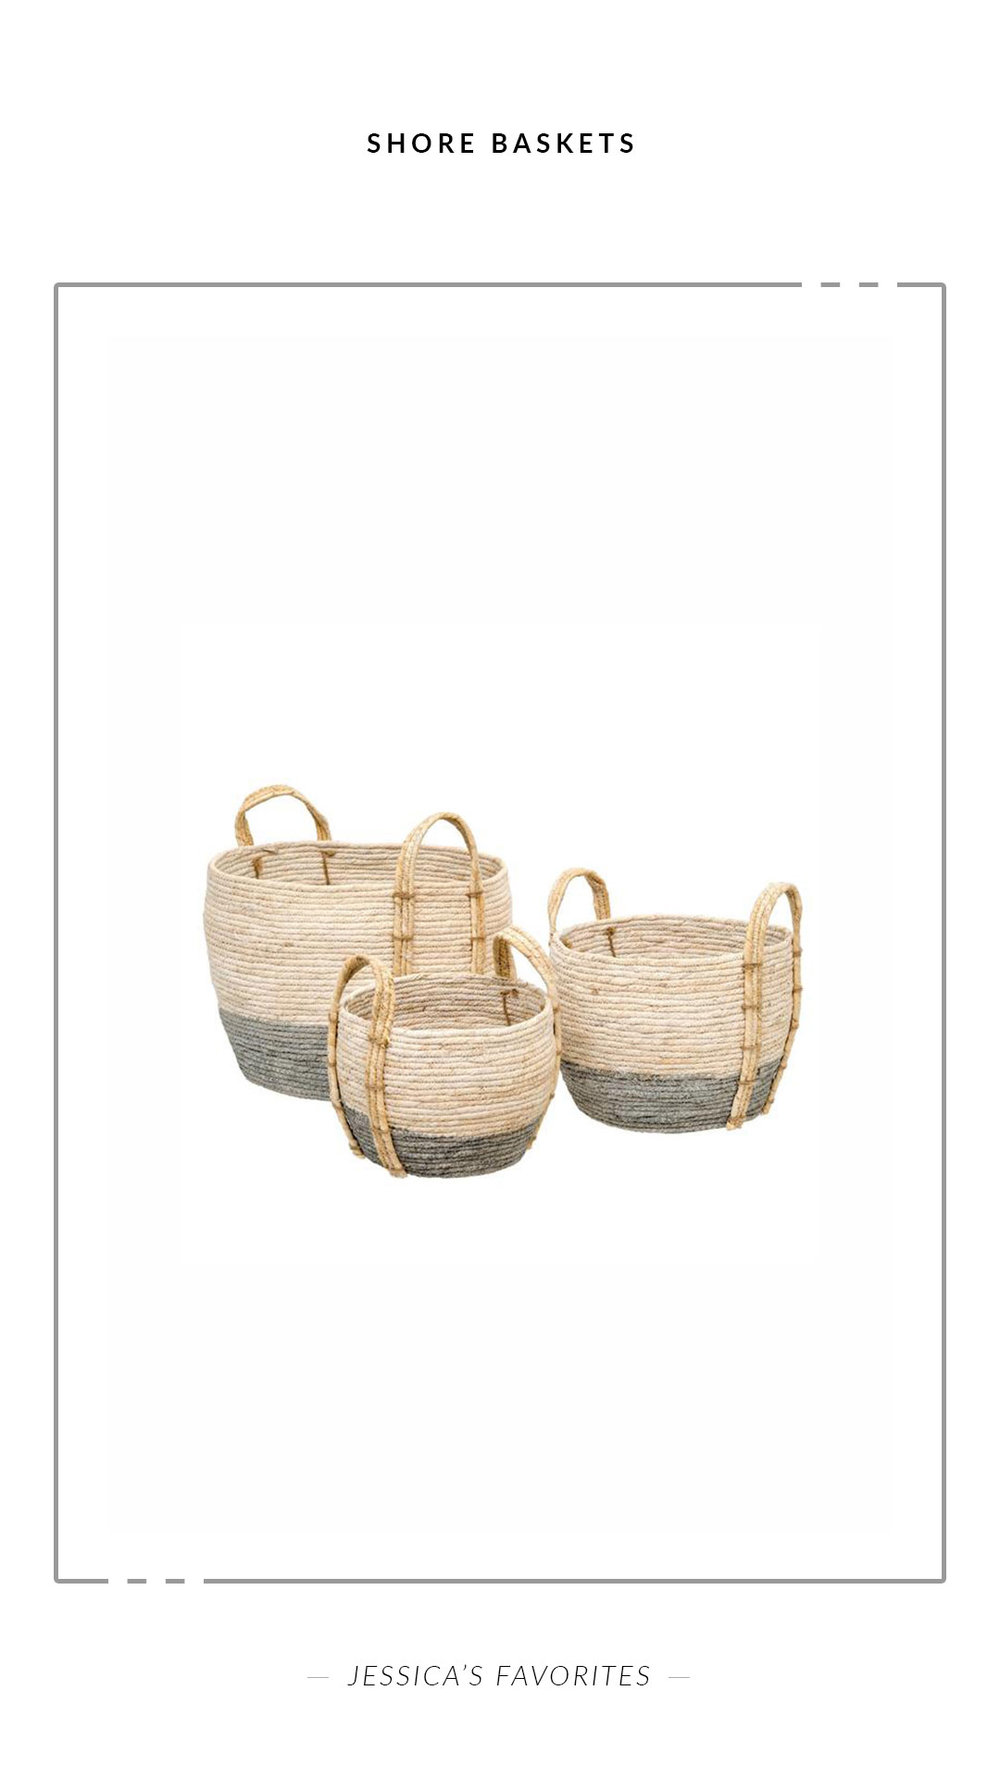 SHORE-BASKETS.jpg